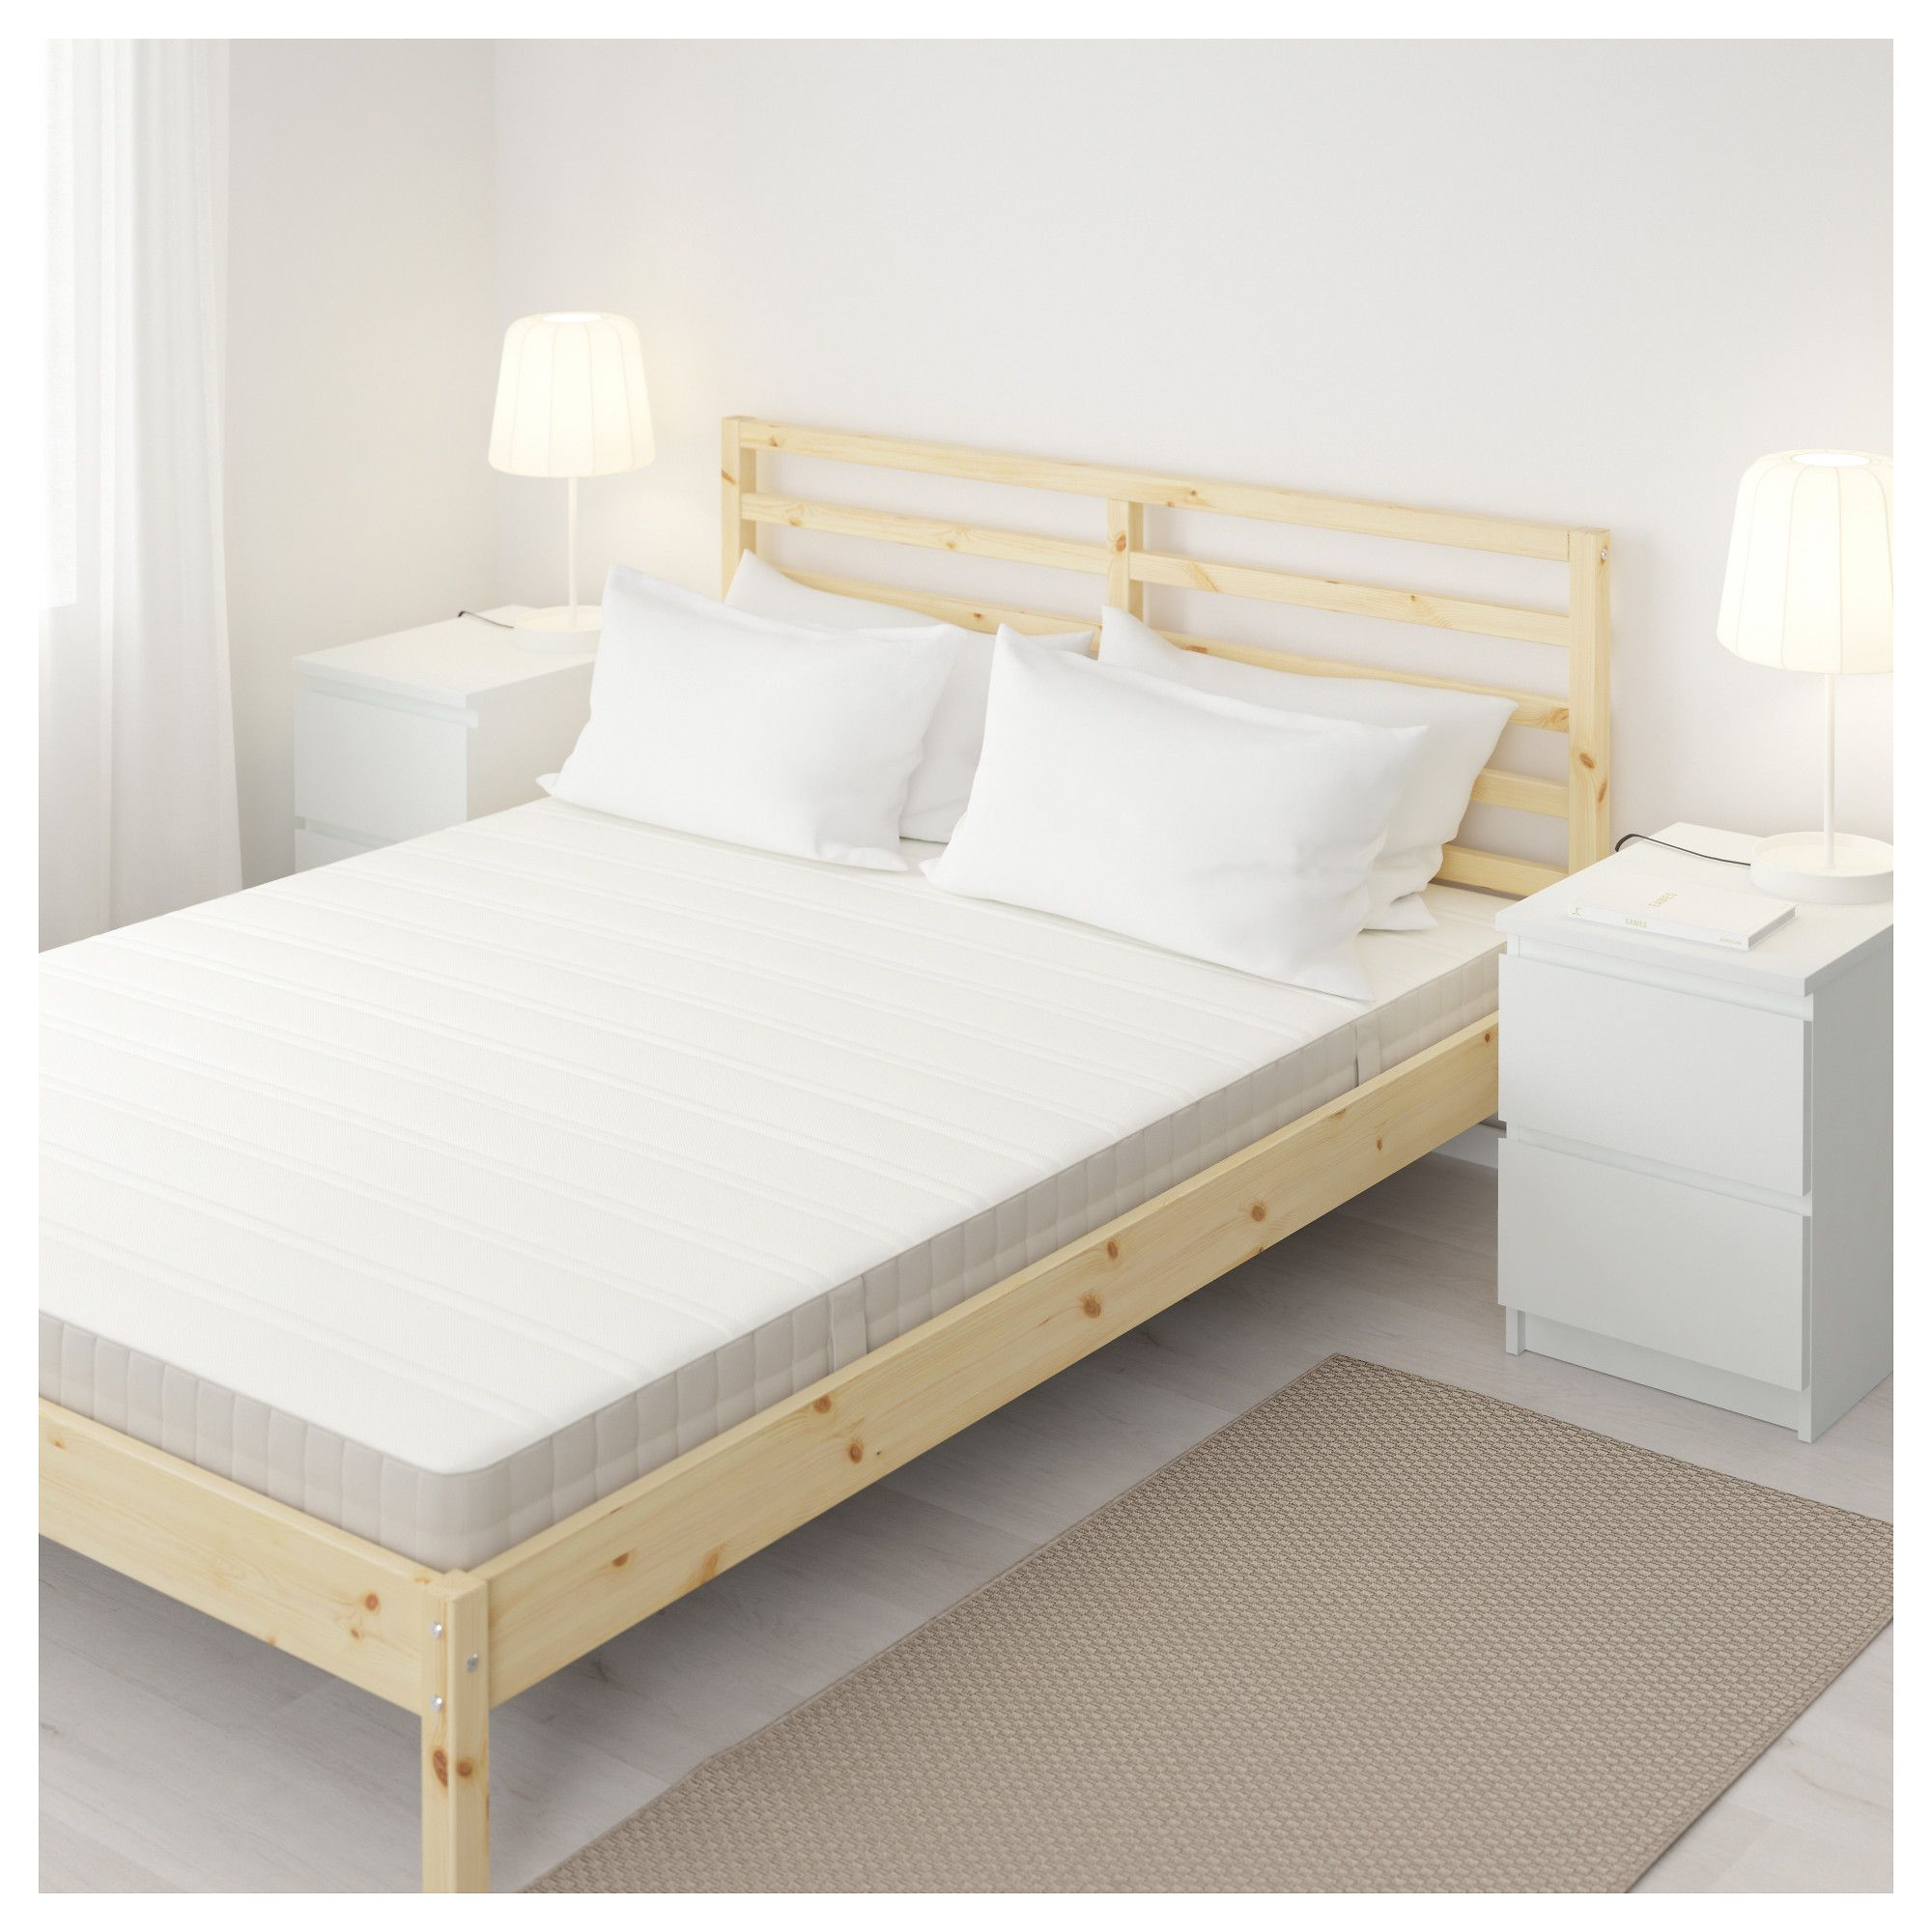 HASVÅG Spring mattress medium firm, beige Full Bed